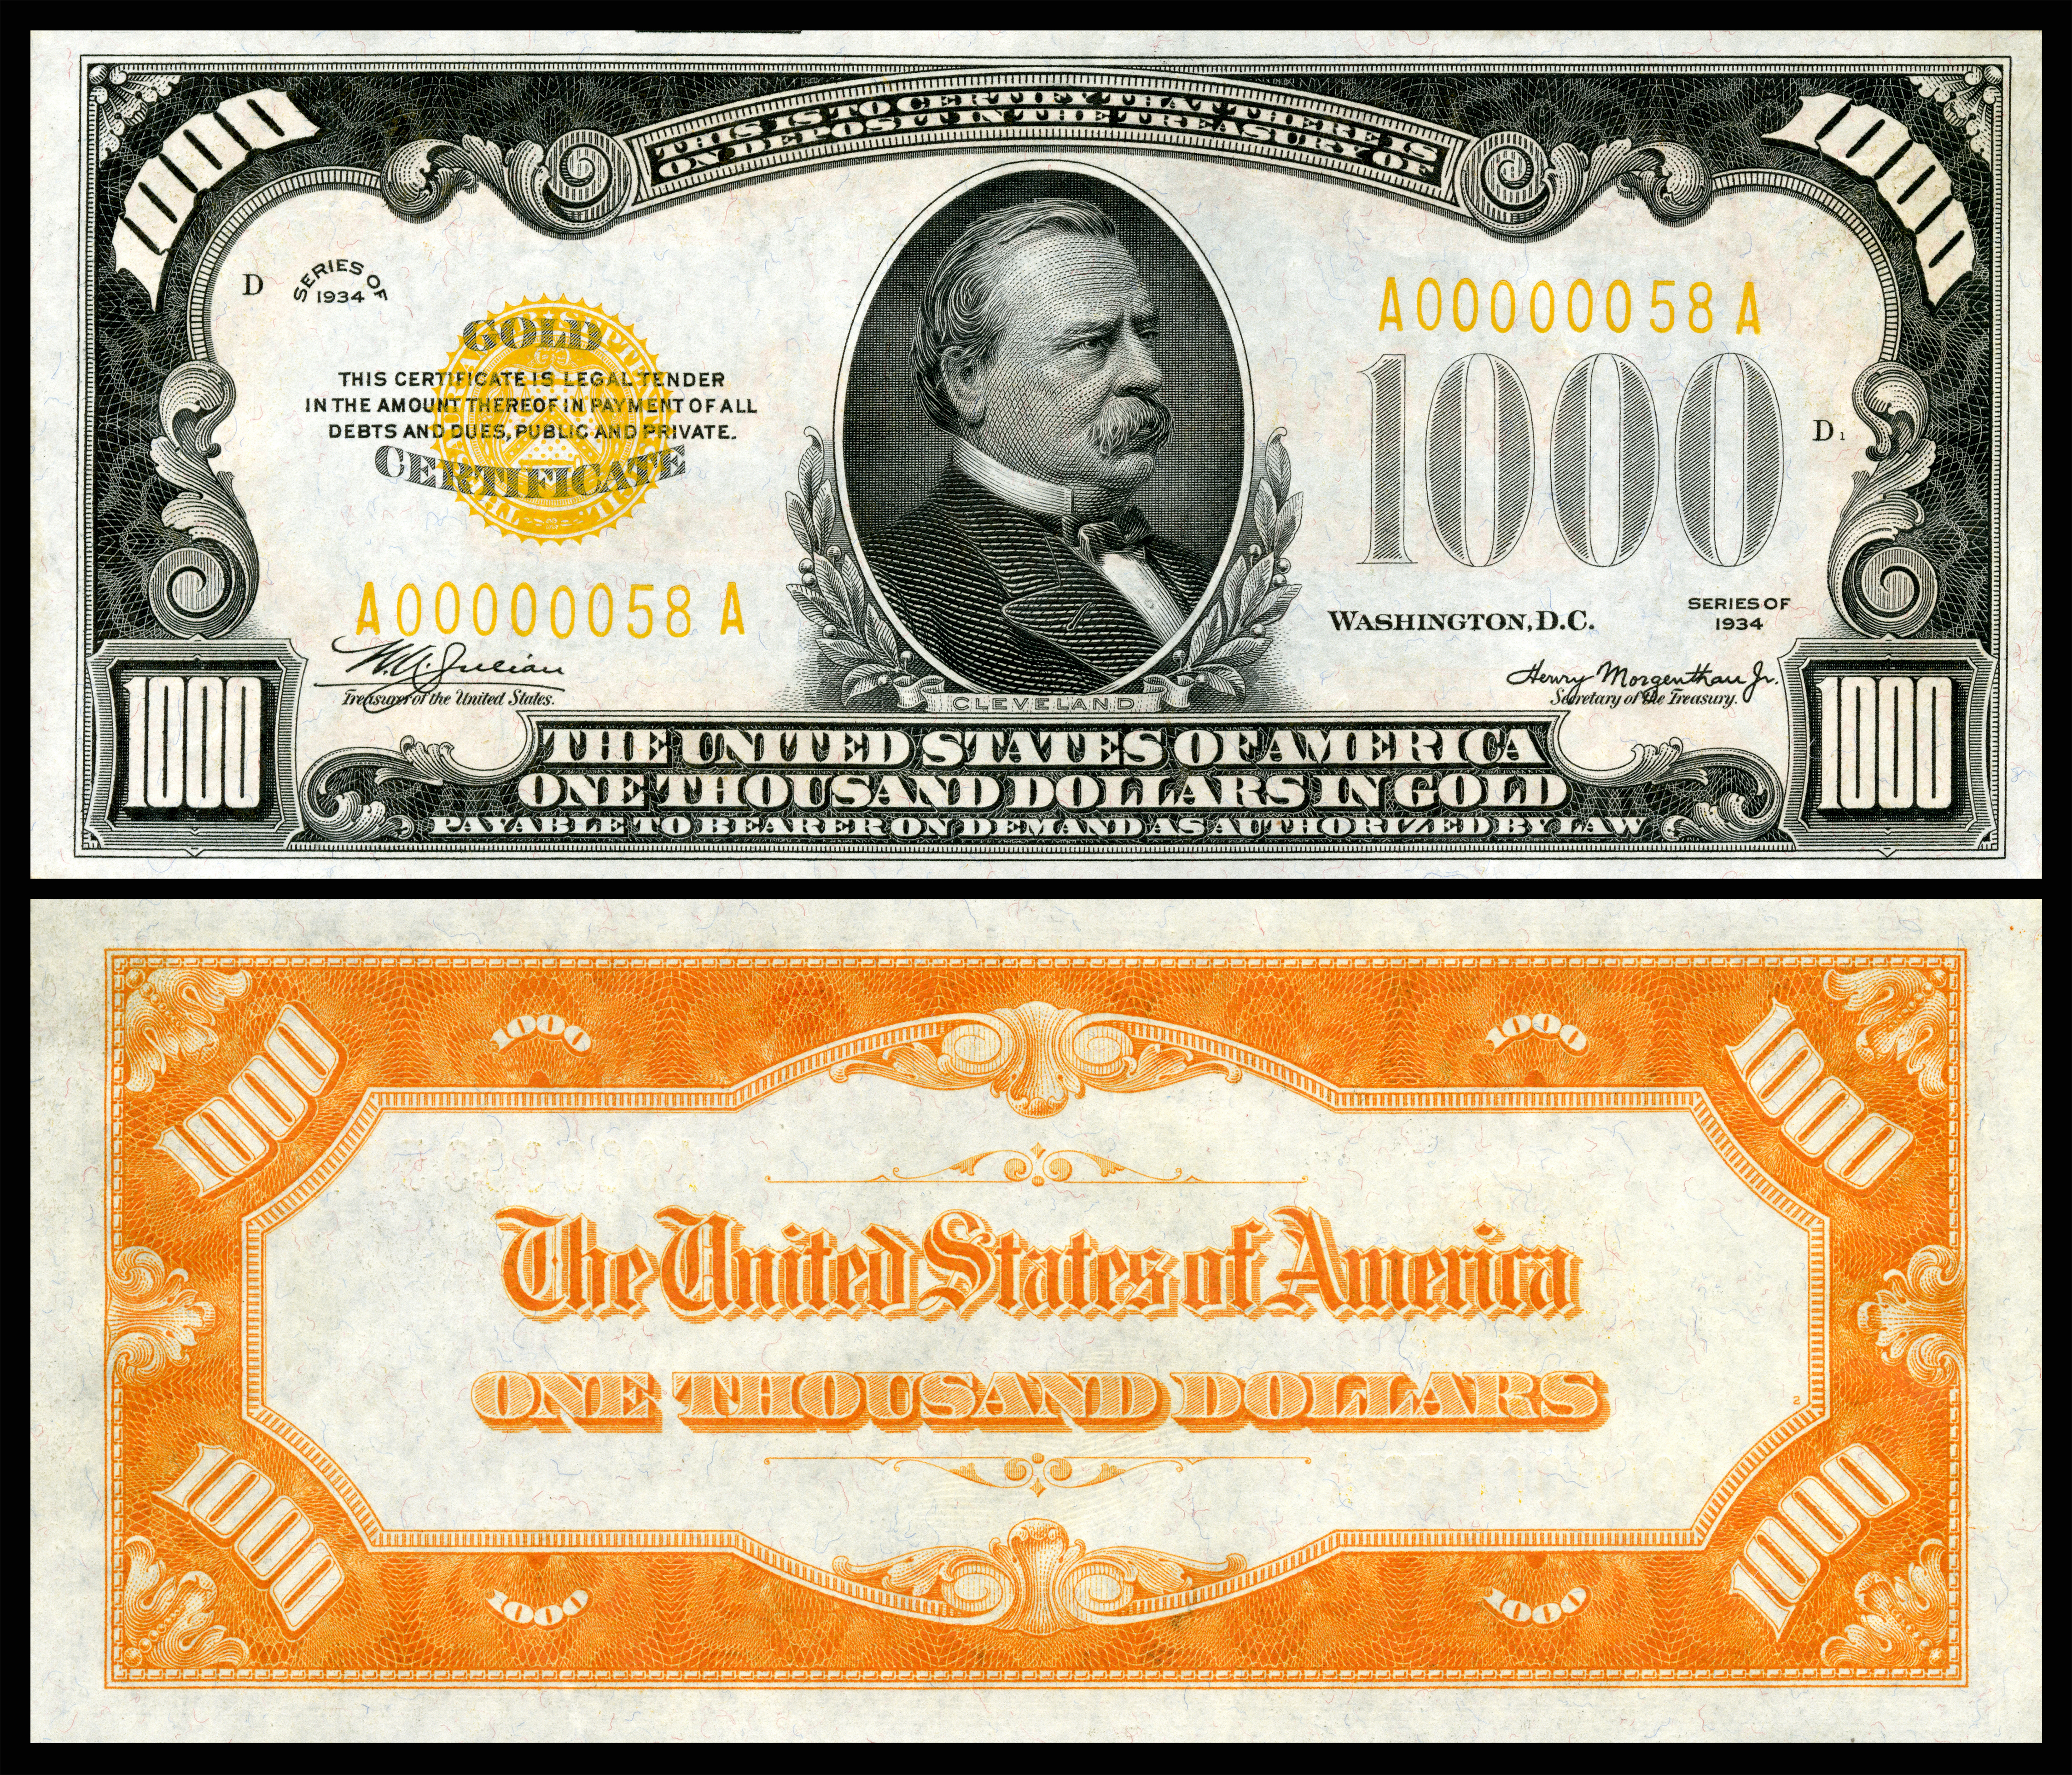 List Of Presidents Of The United States On Currency Wikipedia